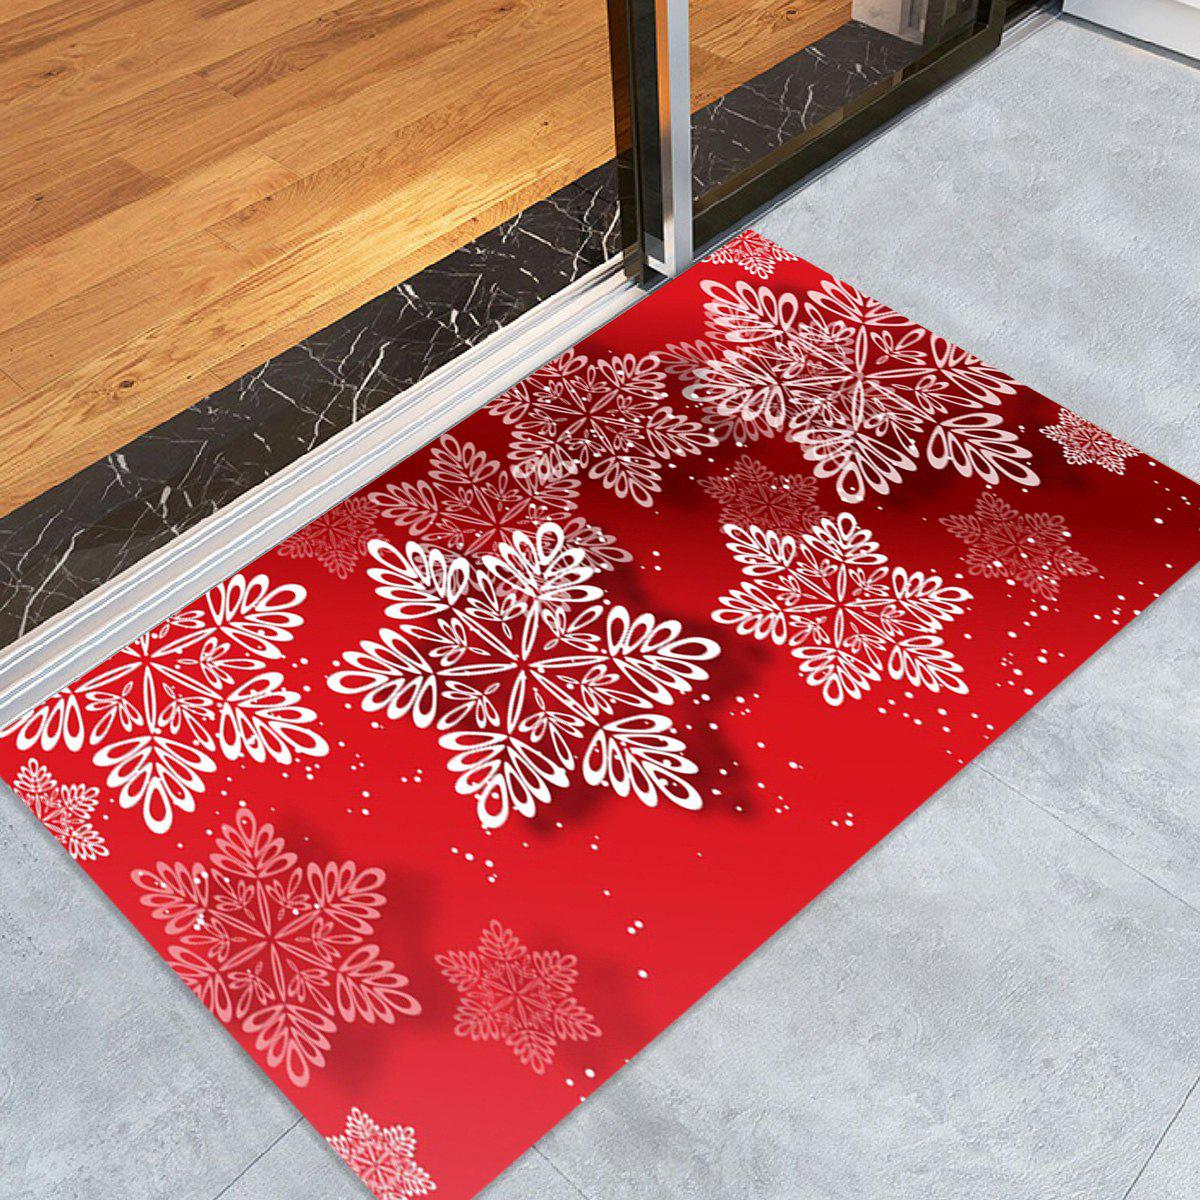 Christmas Snowflakes Pattern Indoor Outdoor Area Rug snowman merry christmas pattern indoor outdoor area rug